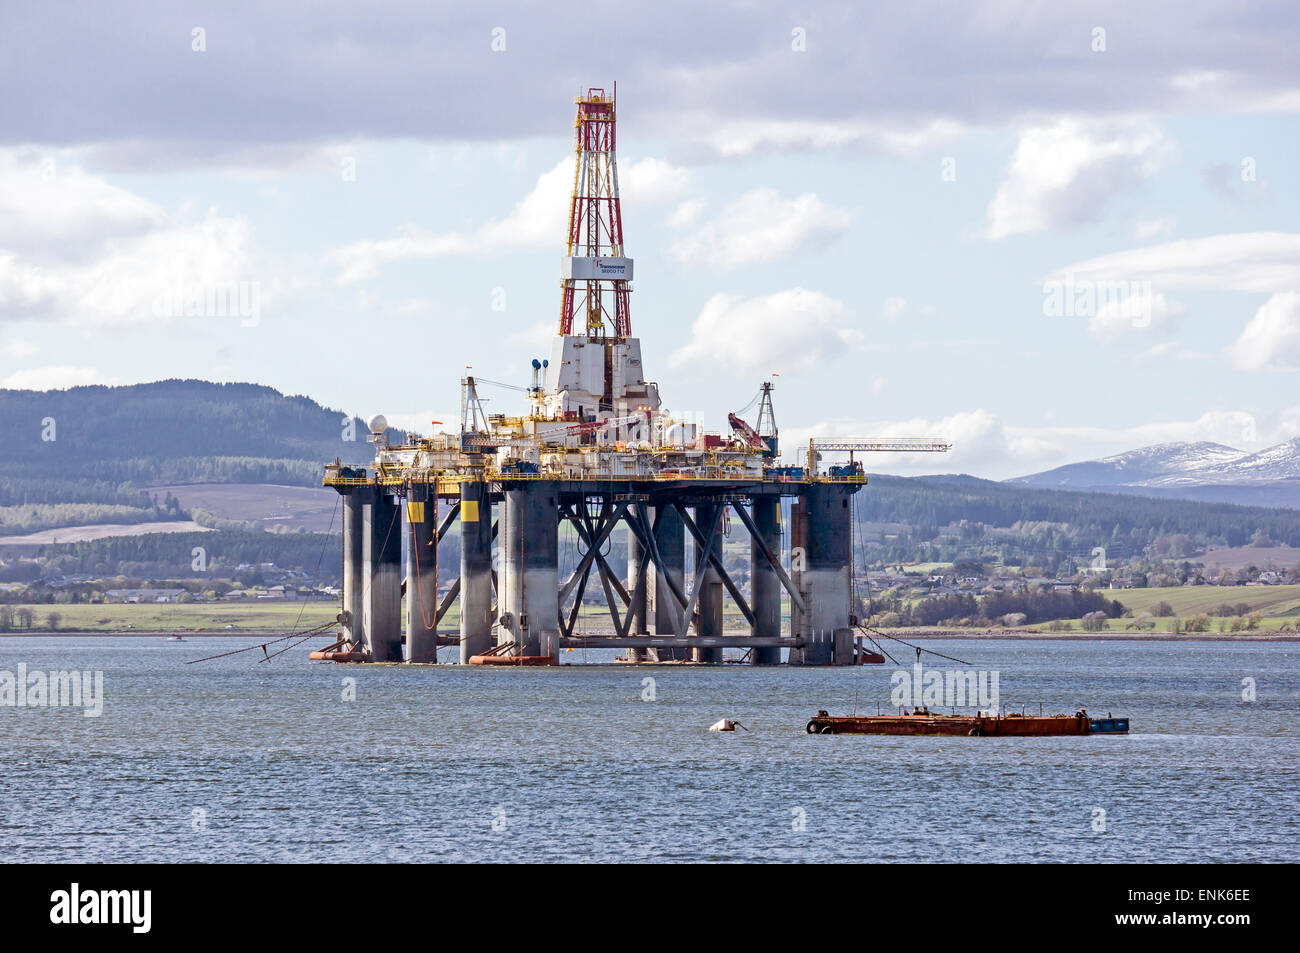 Midwater Semi-Submersible rig Transocean Sedco 712 anchored in the Cromarty Firth at the Black Isle Highland Scotland - Stock Image